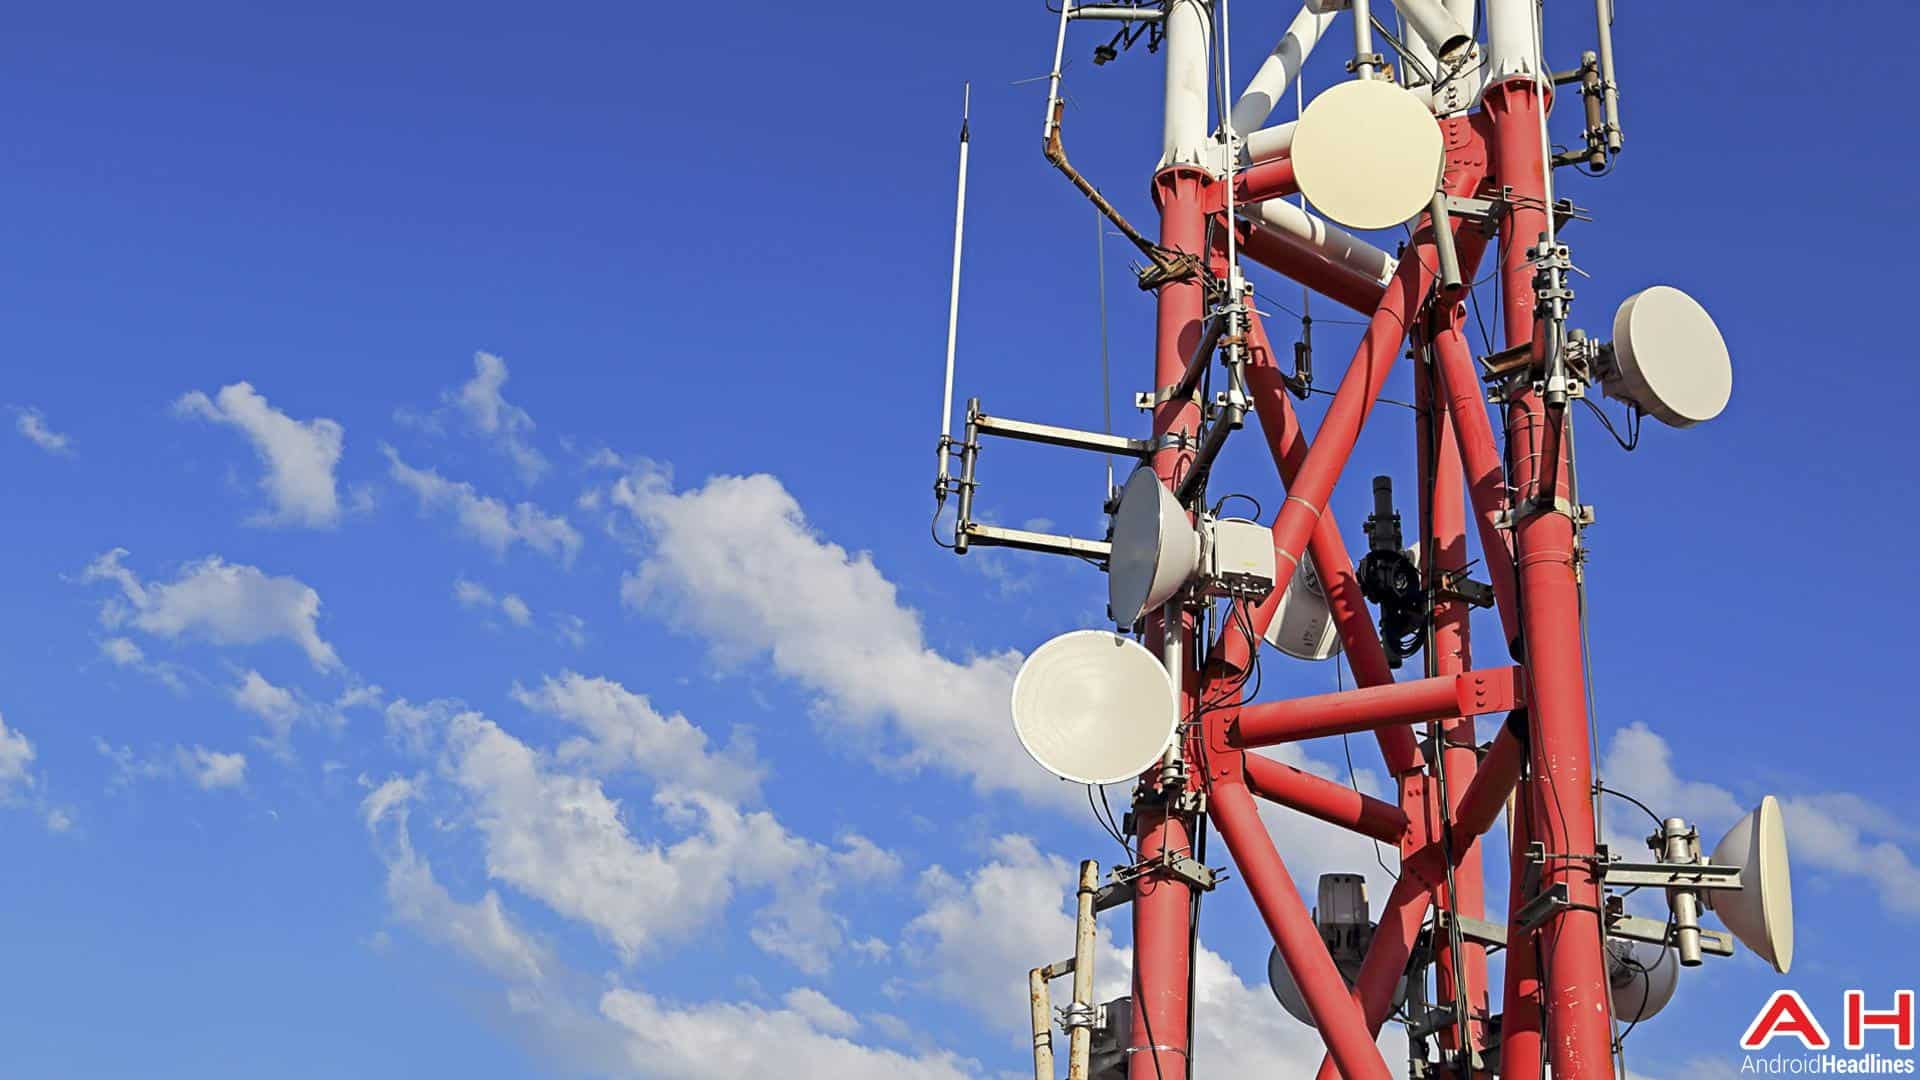 AH Carrier Wireless Cell Towers 3